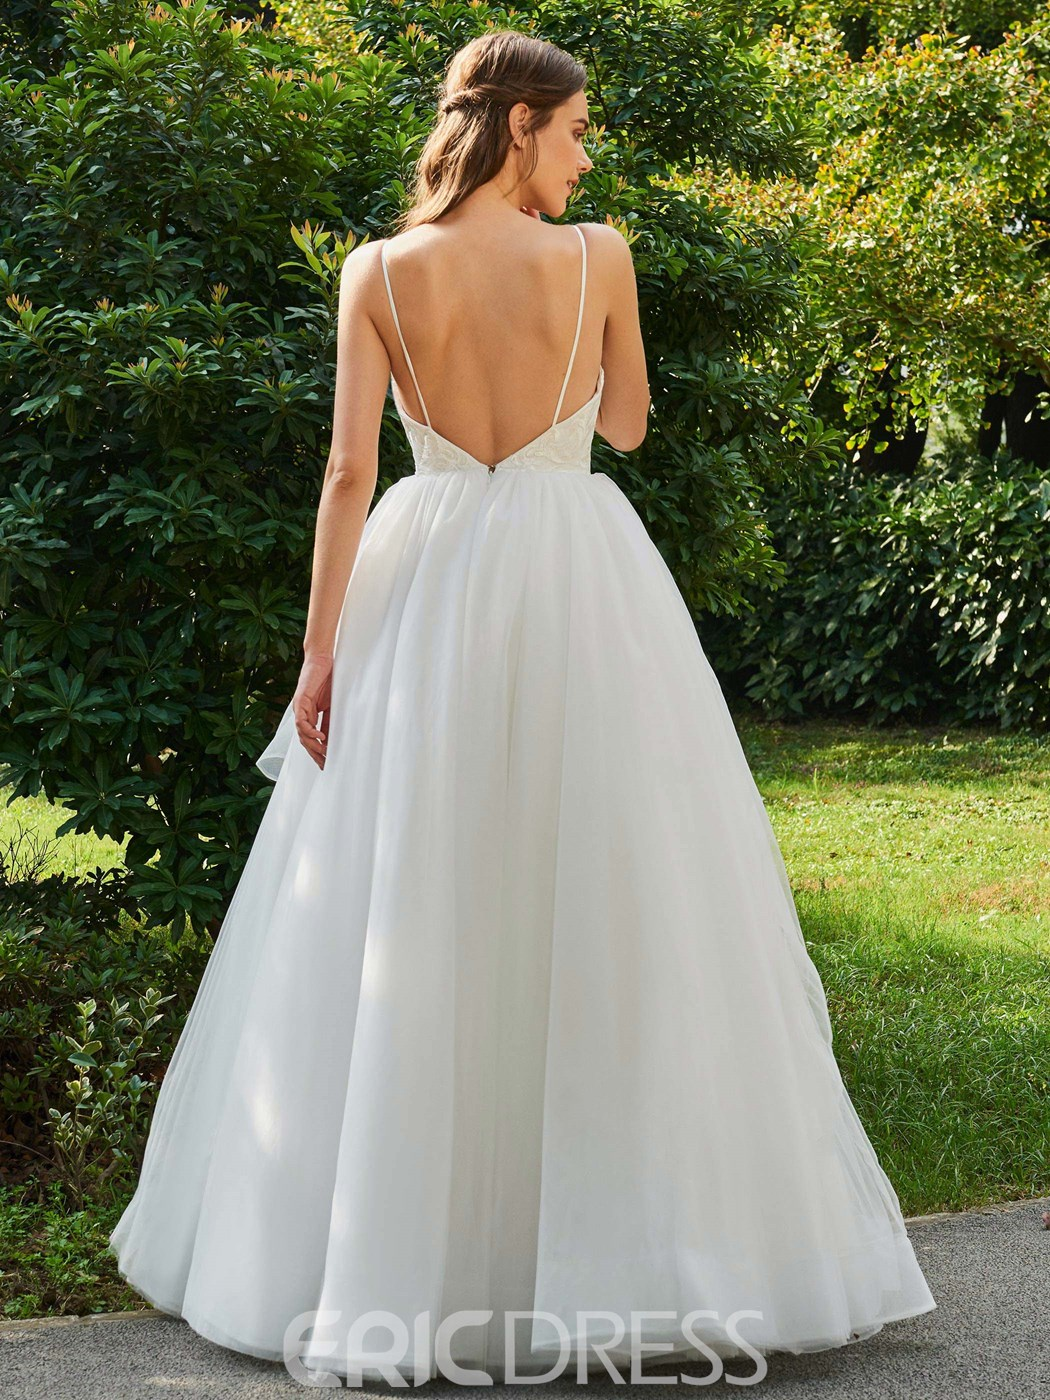 Ericdress Spaghetti Straps Ball Gown Tulle Wedding Dress